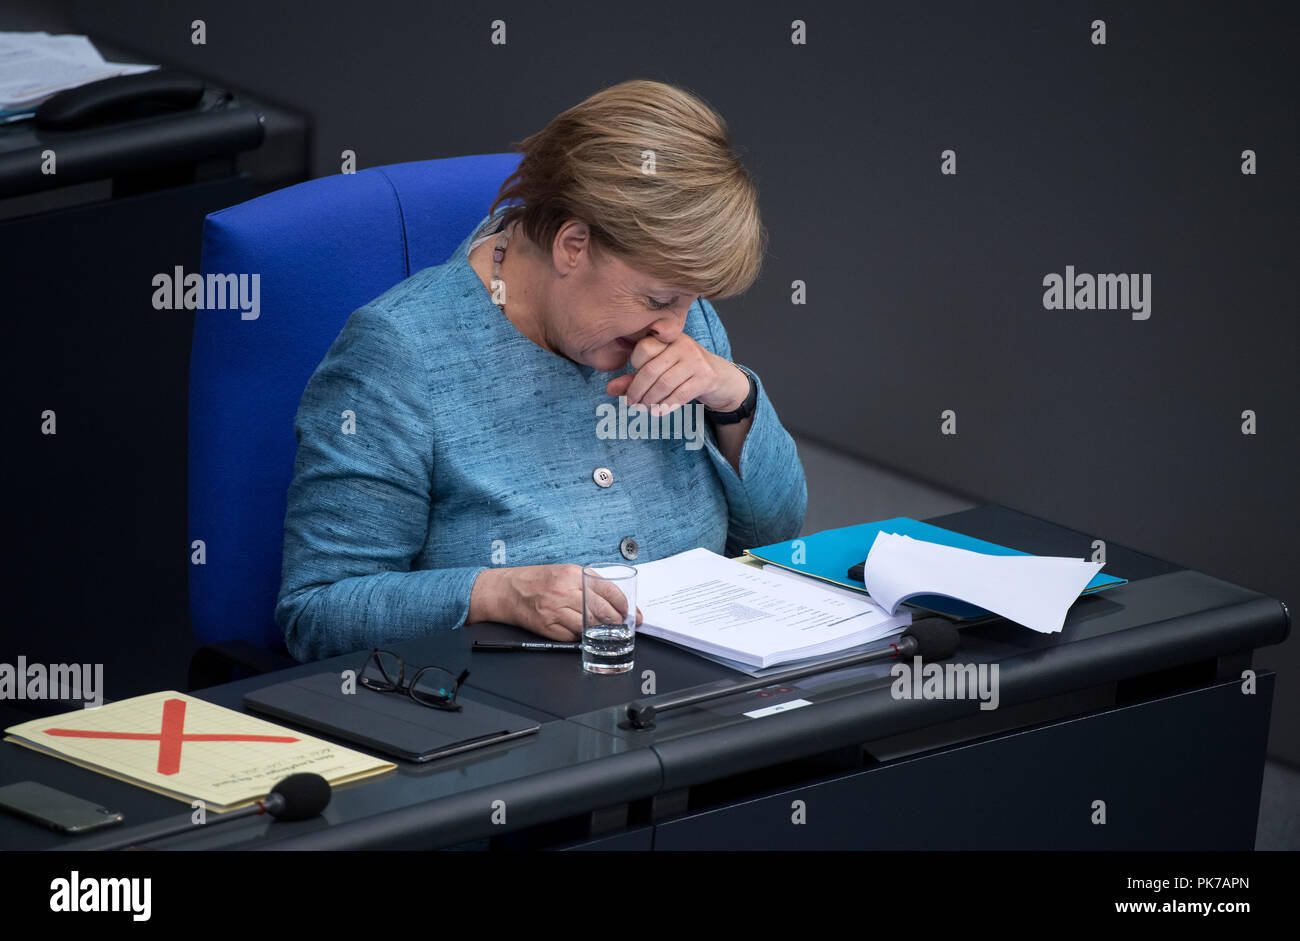 Berlin, Germany. 11 September 2018, Berlin: Chancellor Angela Merkel (CDU) sits in the German Bundestag during the plenary session. The main topic of the 47th session of the 19th legislative period is the Federal Government's draft budget 2019 and the federal budget 2018 to 2022. Photo: Bernd von Jutrczenka/dpa Credit: dpa picture alliance/Alamy Live News - Stock Image